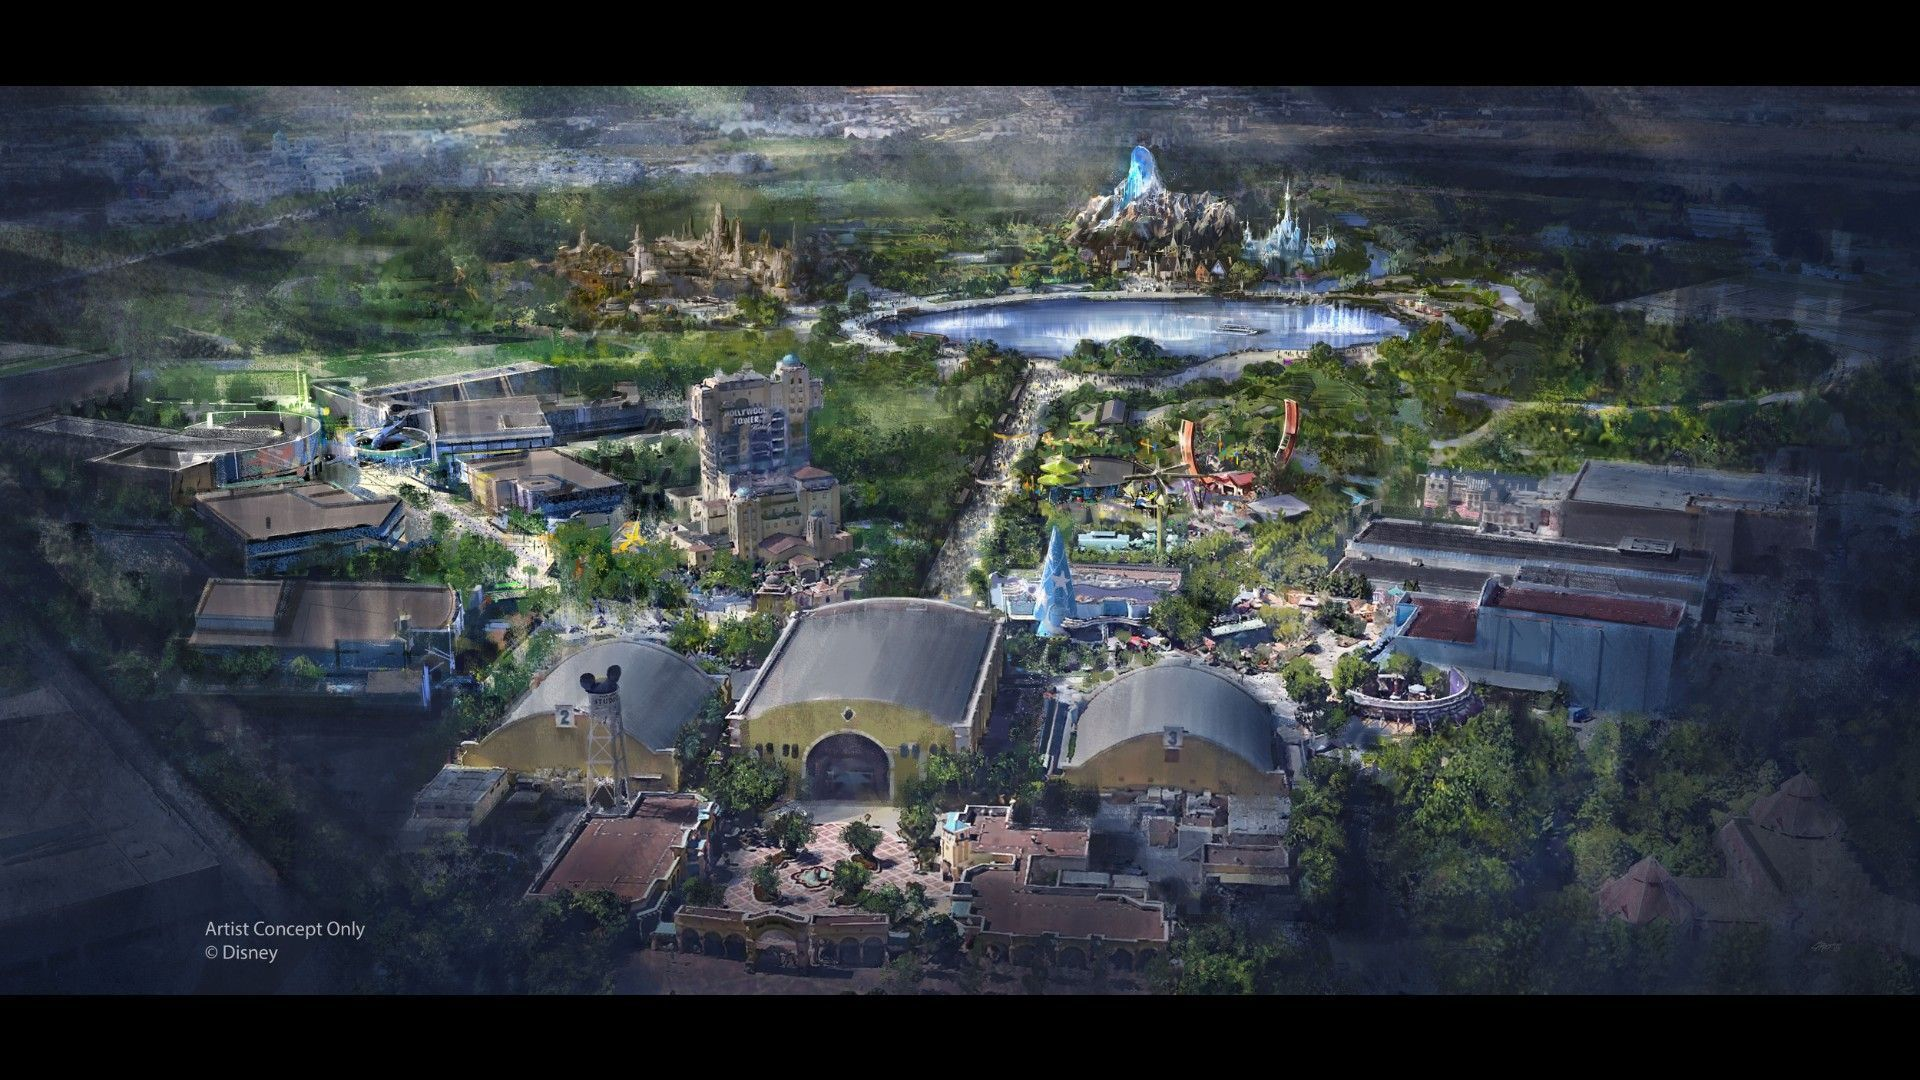 Three New Areas Based on Marvel, Frozen, and Star Wars Are Coming to Disneyland Paris